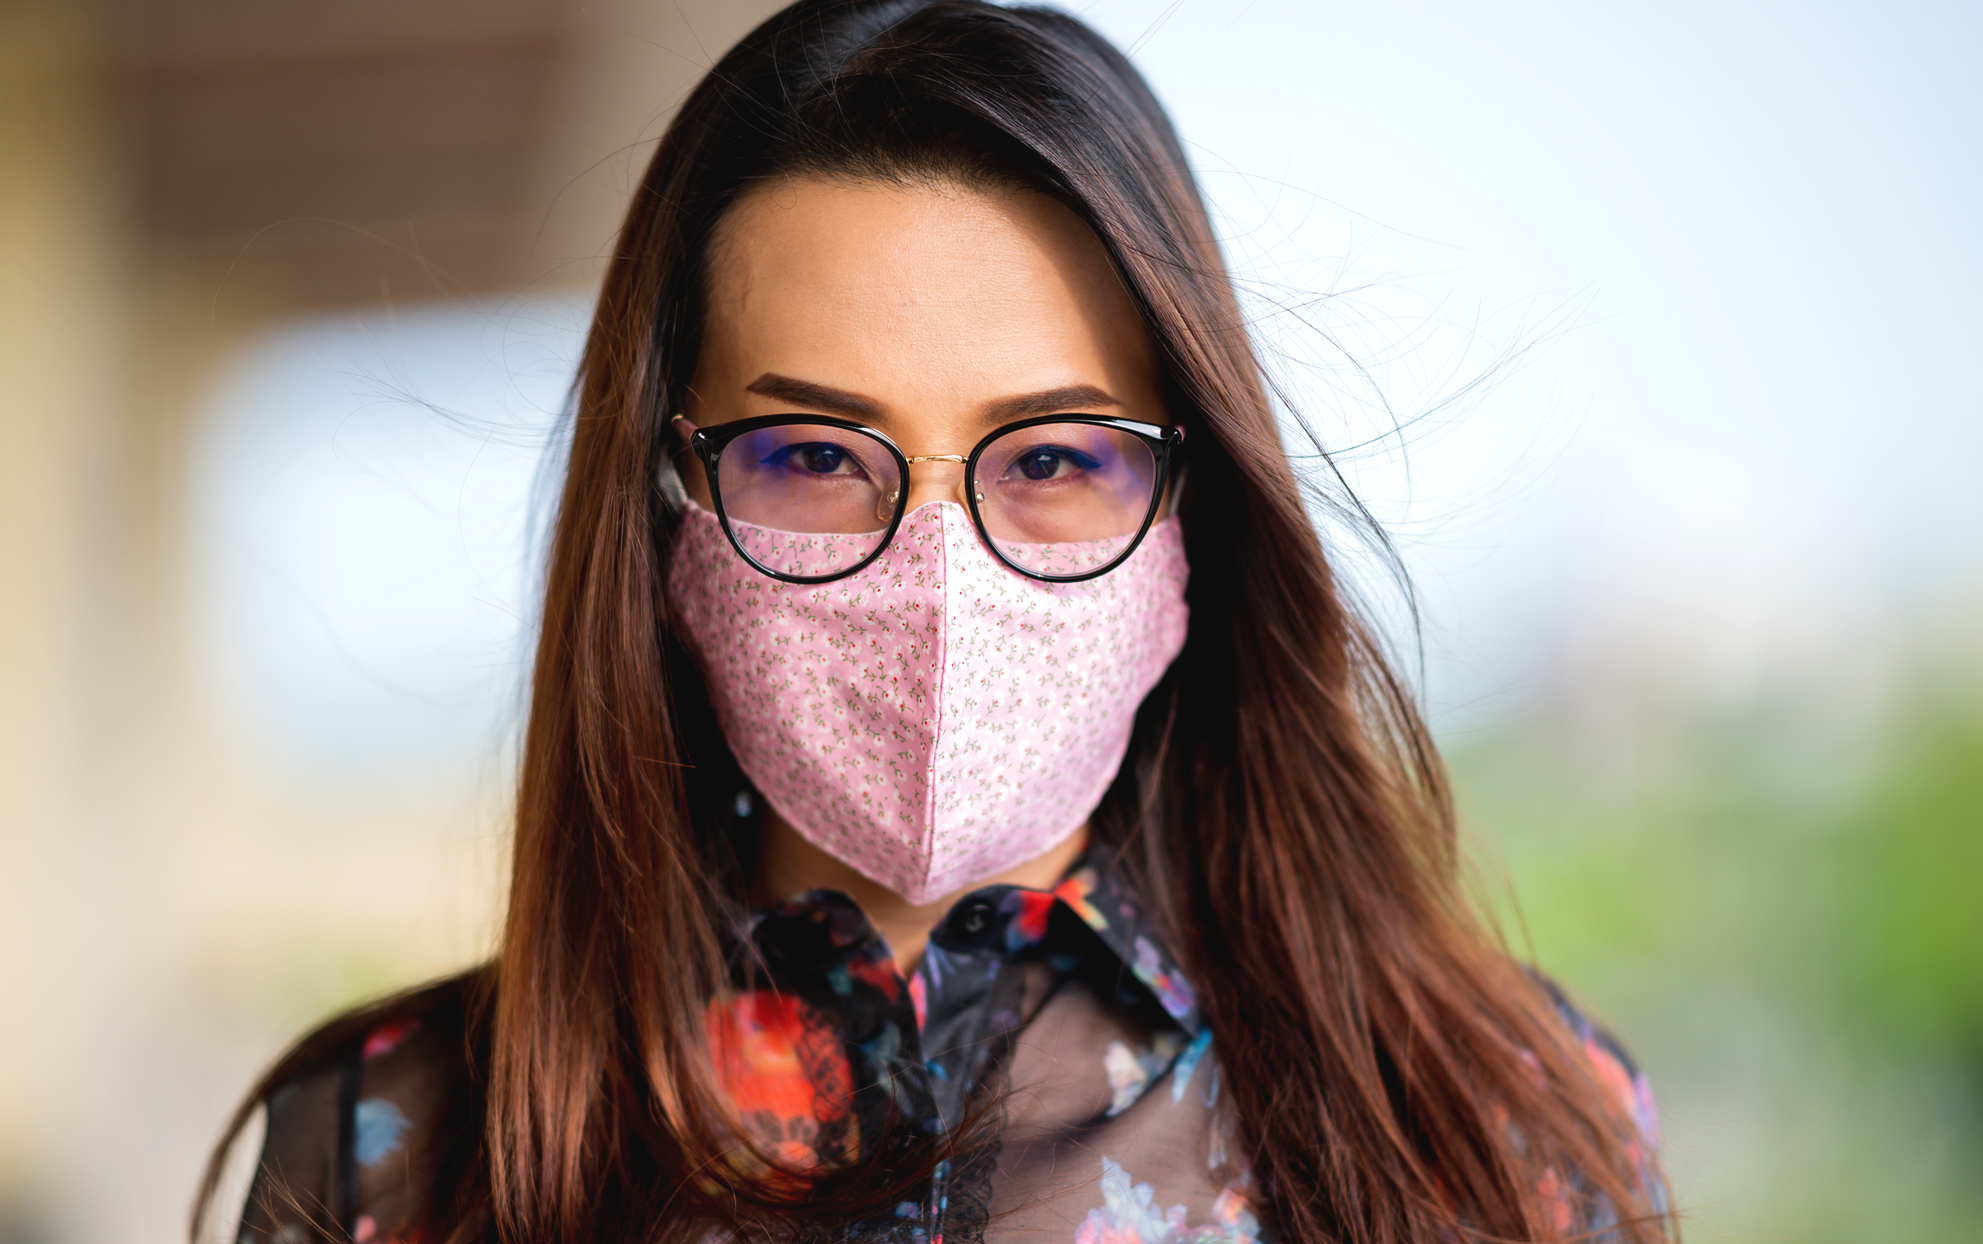 Asian woman wearing a pink face mask